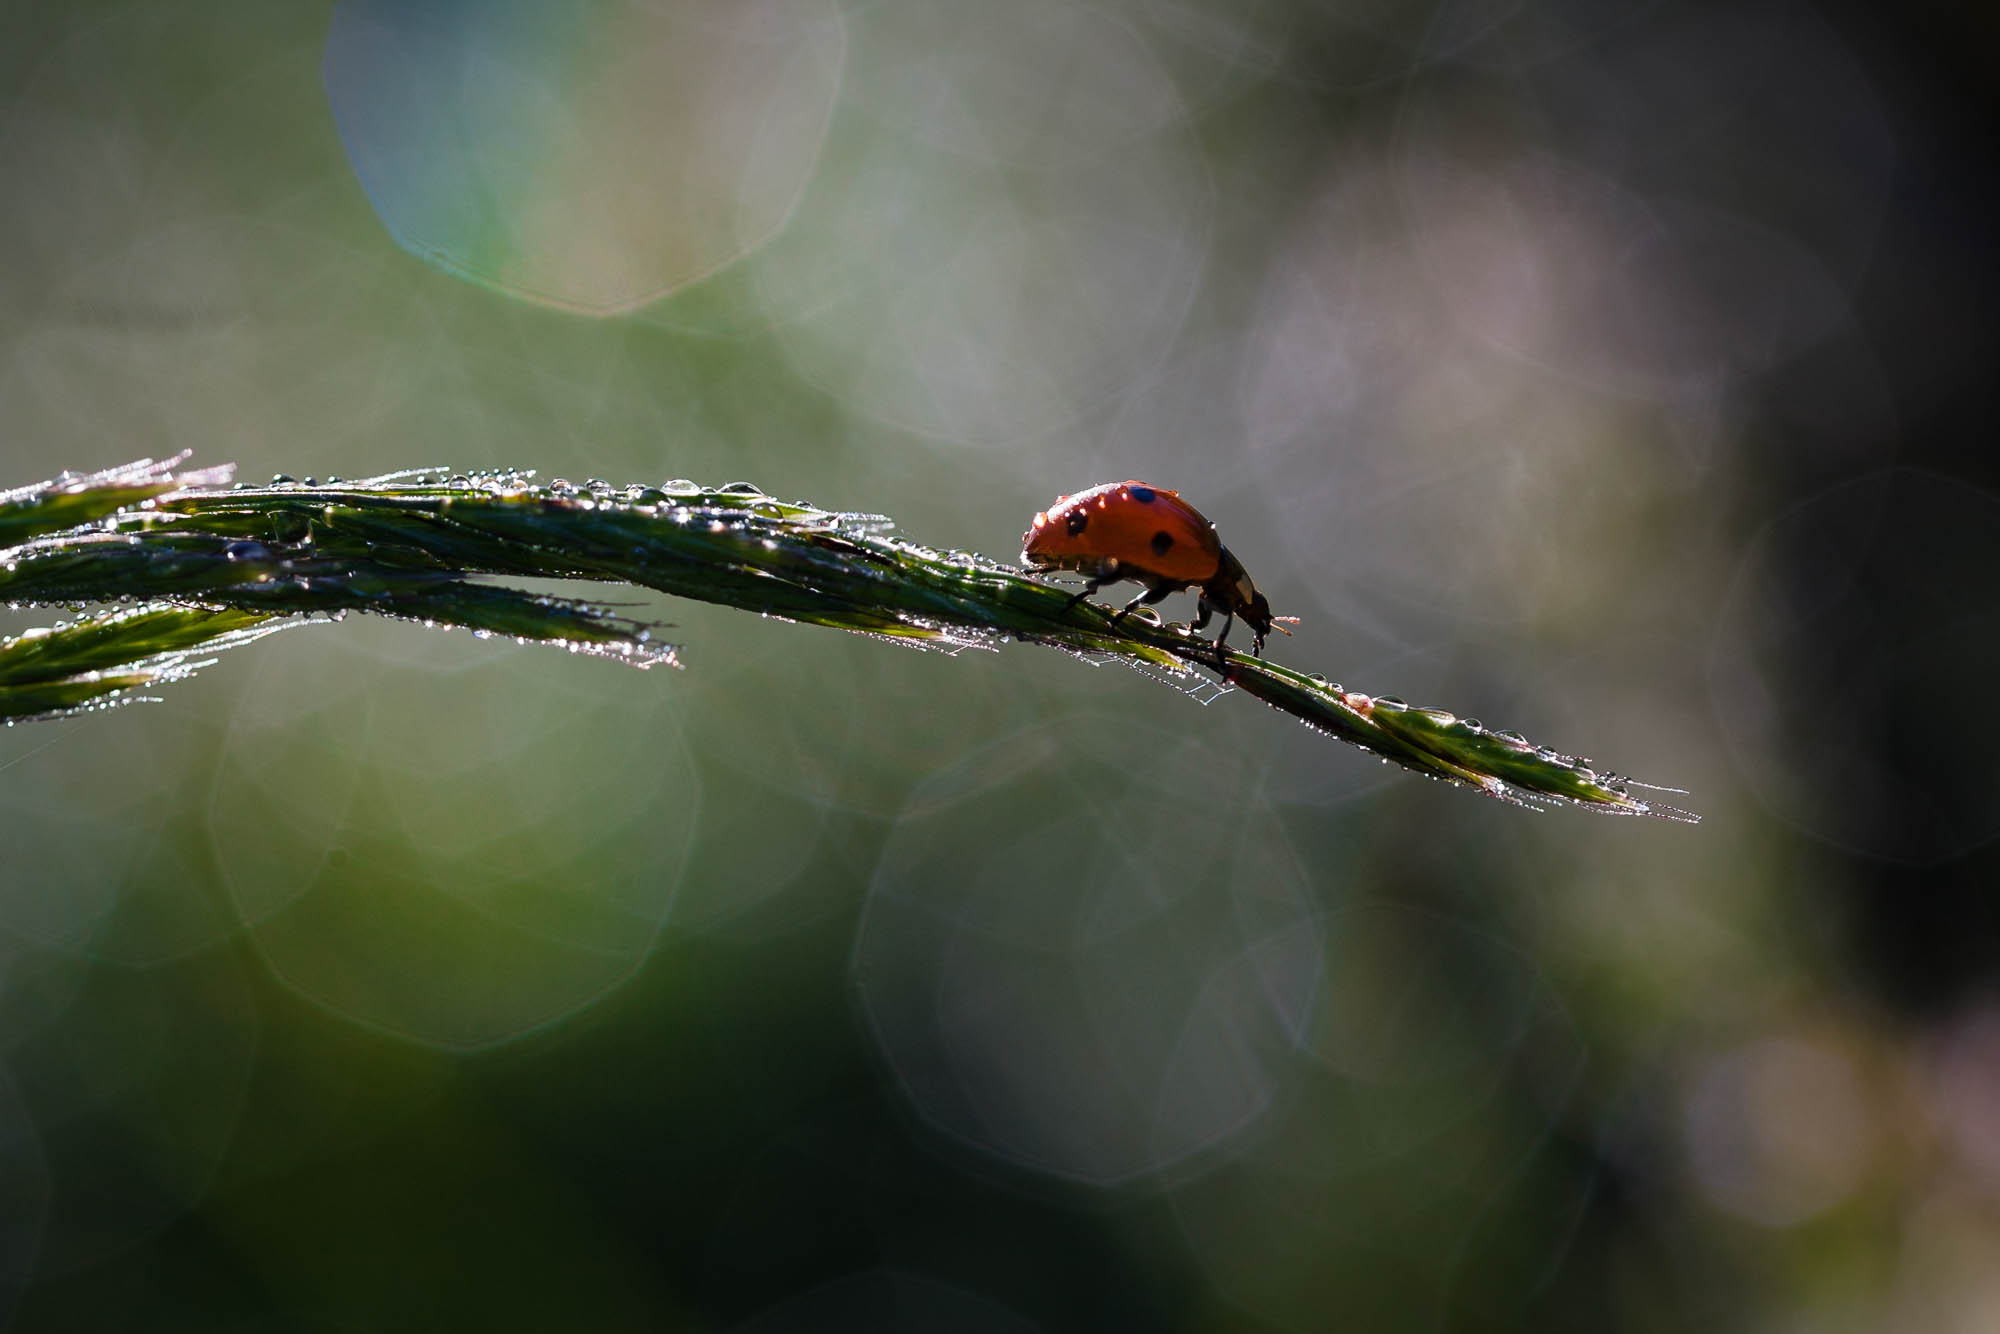 Ladybug and morning dew with bokeh background blur